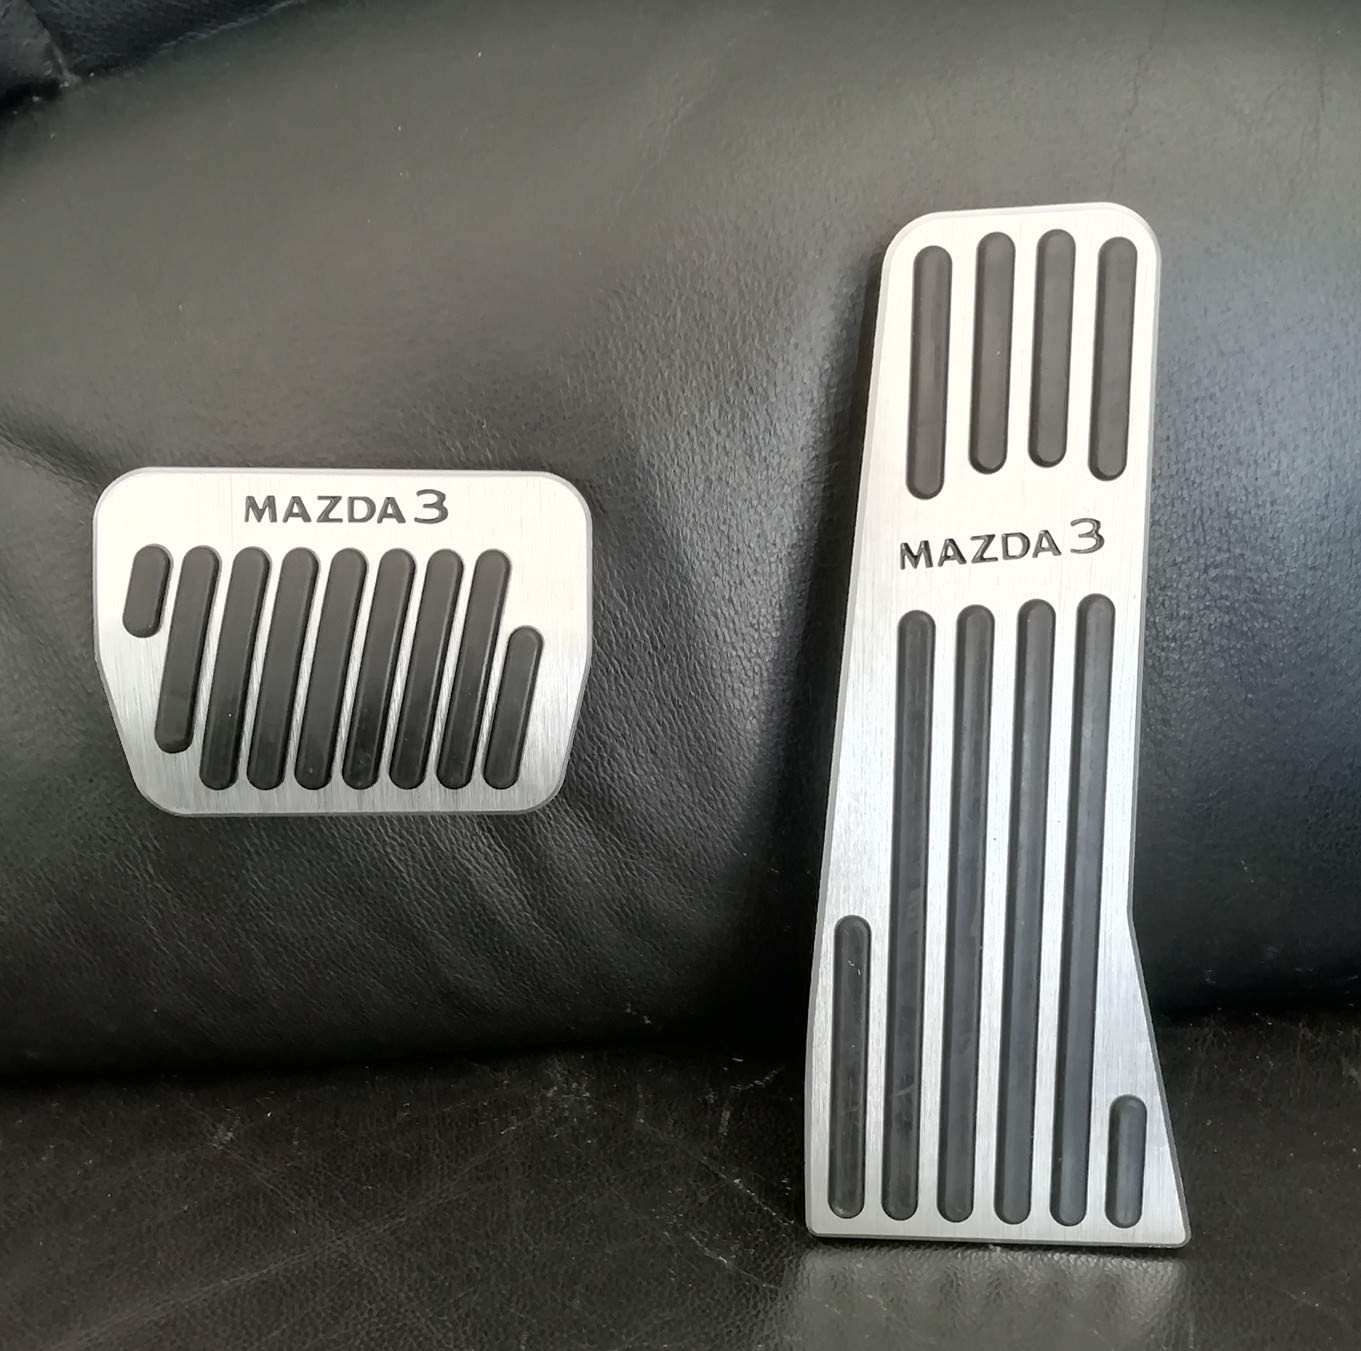 Brake Pedal Accelerator Pedal and Foot Rest Dead Pedal Covers Pads Set for Tesla Model 3 Easy Install Non Slip Performance Foot Pedal Protectors